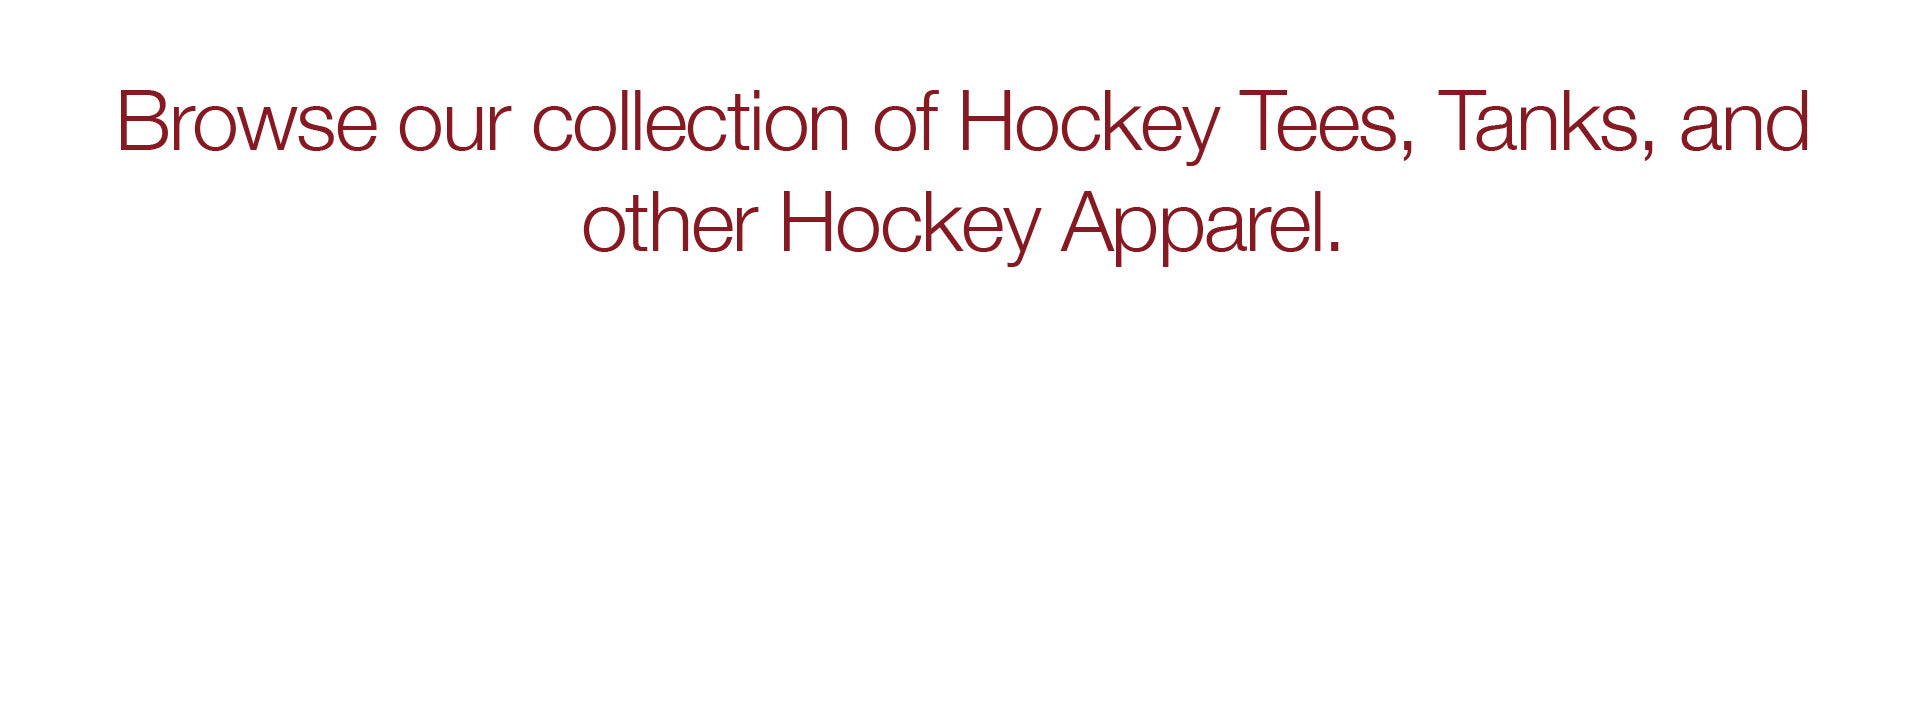 Browse our collection of Hockey Tees, Tanks, and other Hockey Apparel